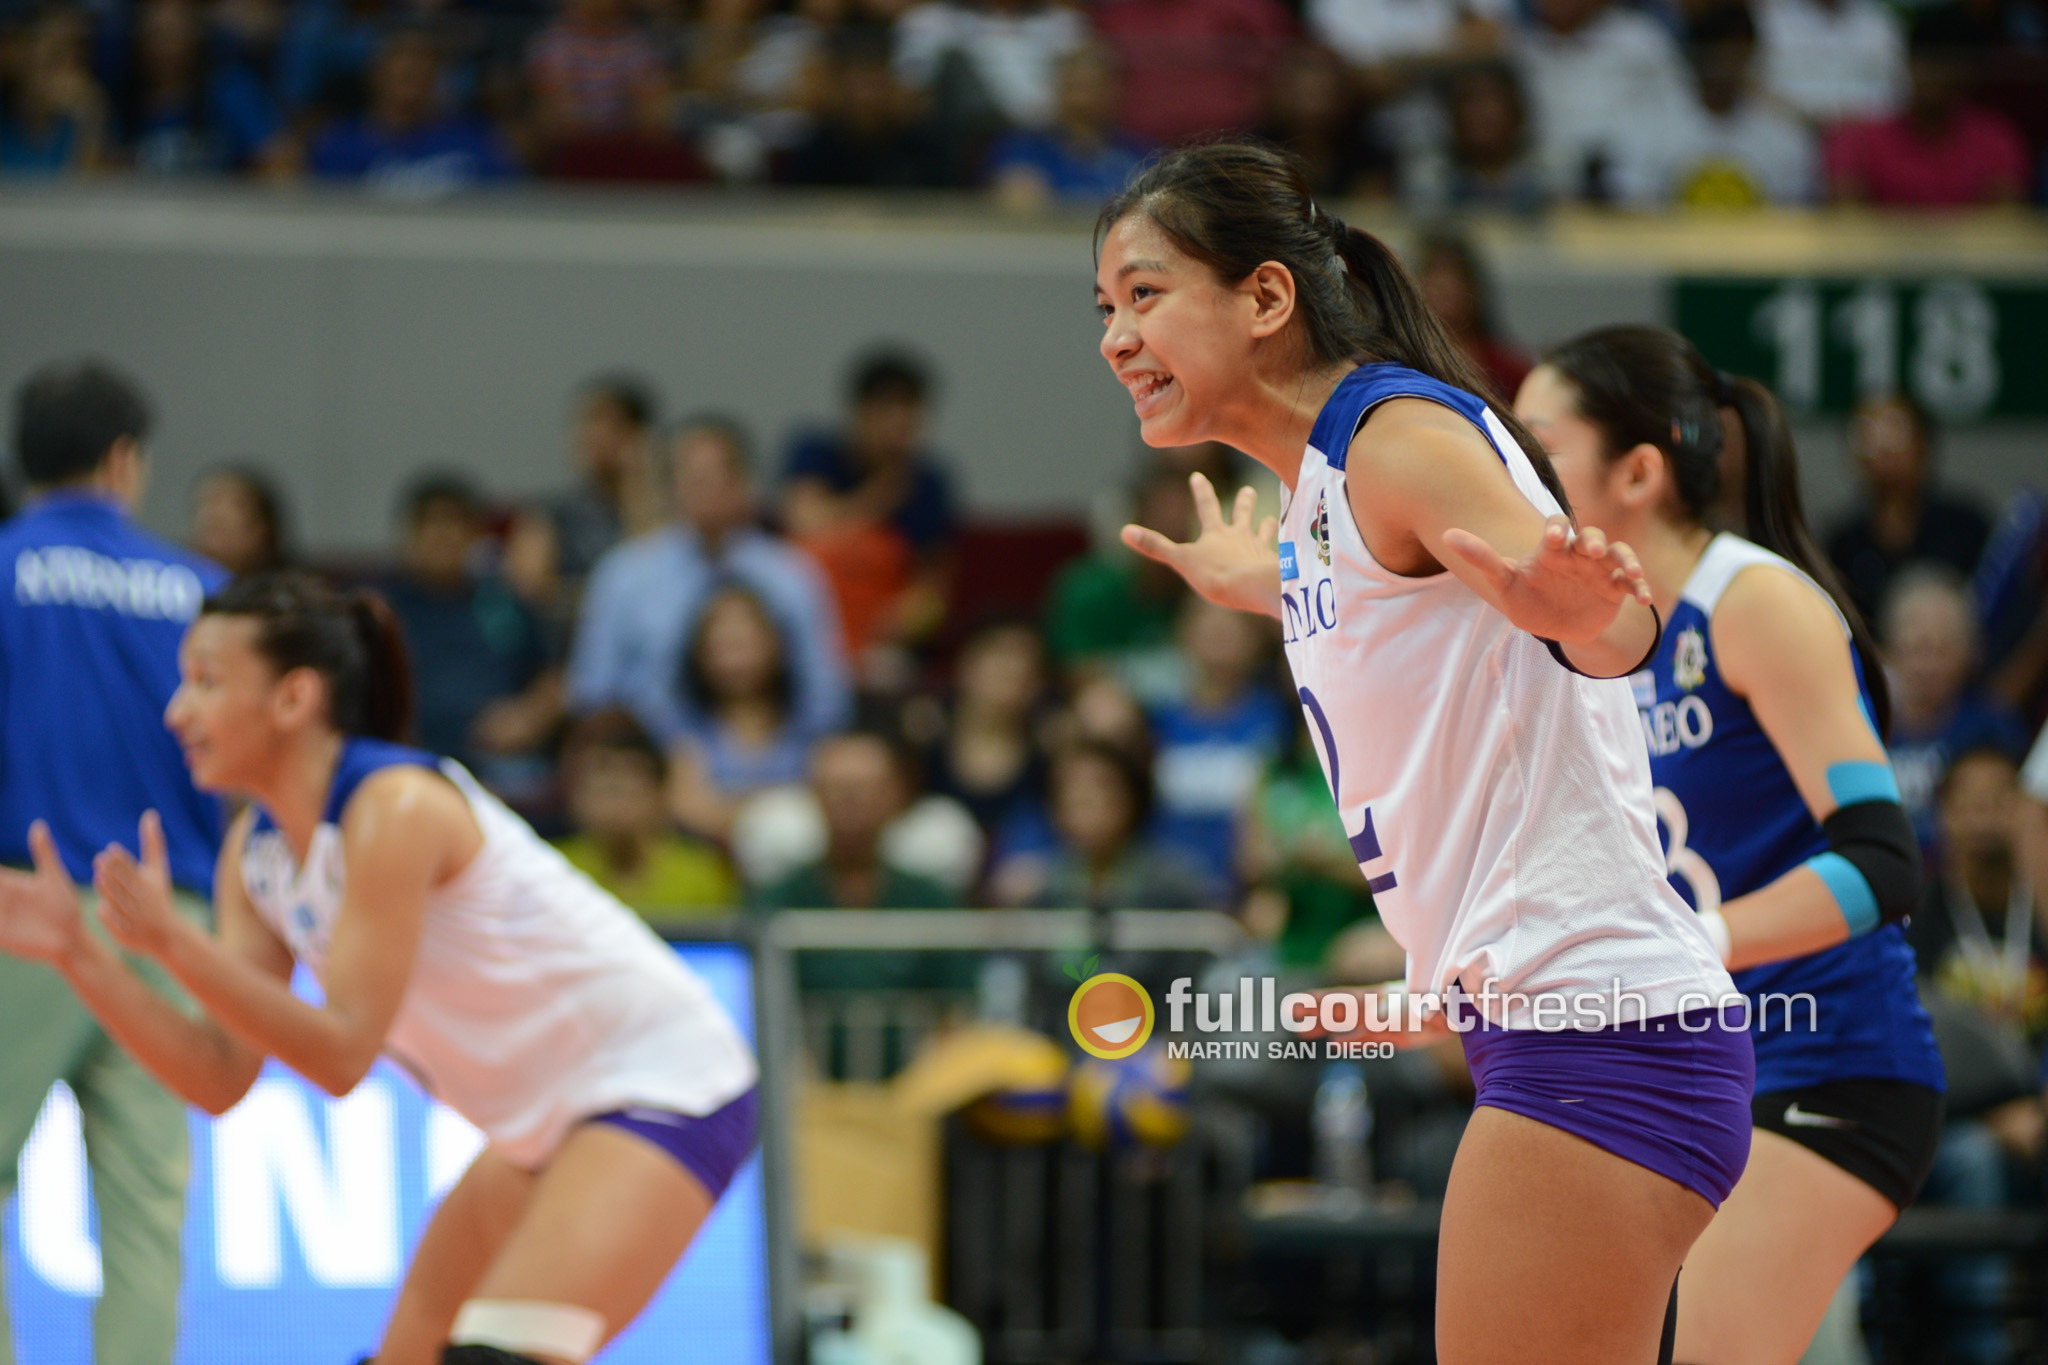 UAAP Season 77: Ateneo survives unexpected five-setter challenge from UP